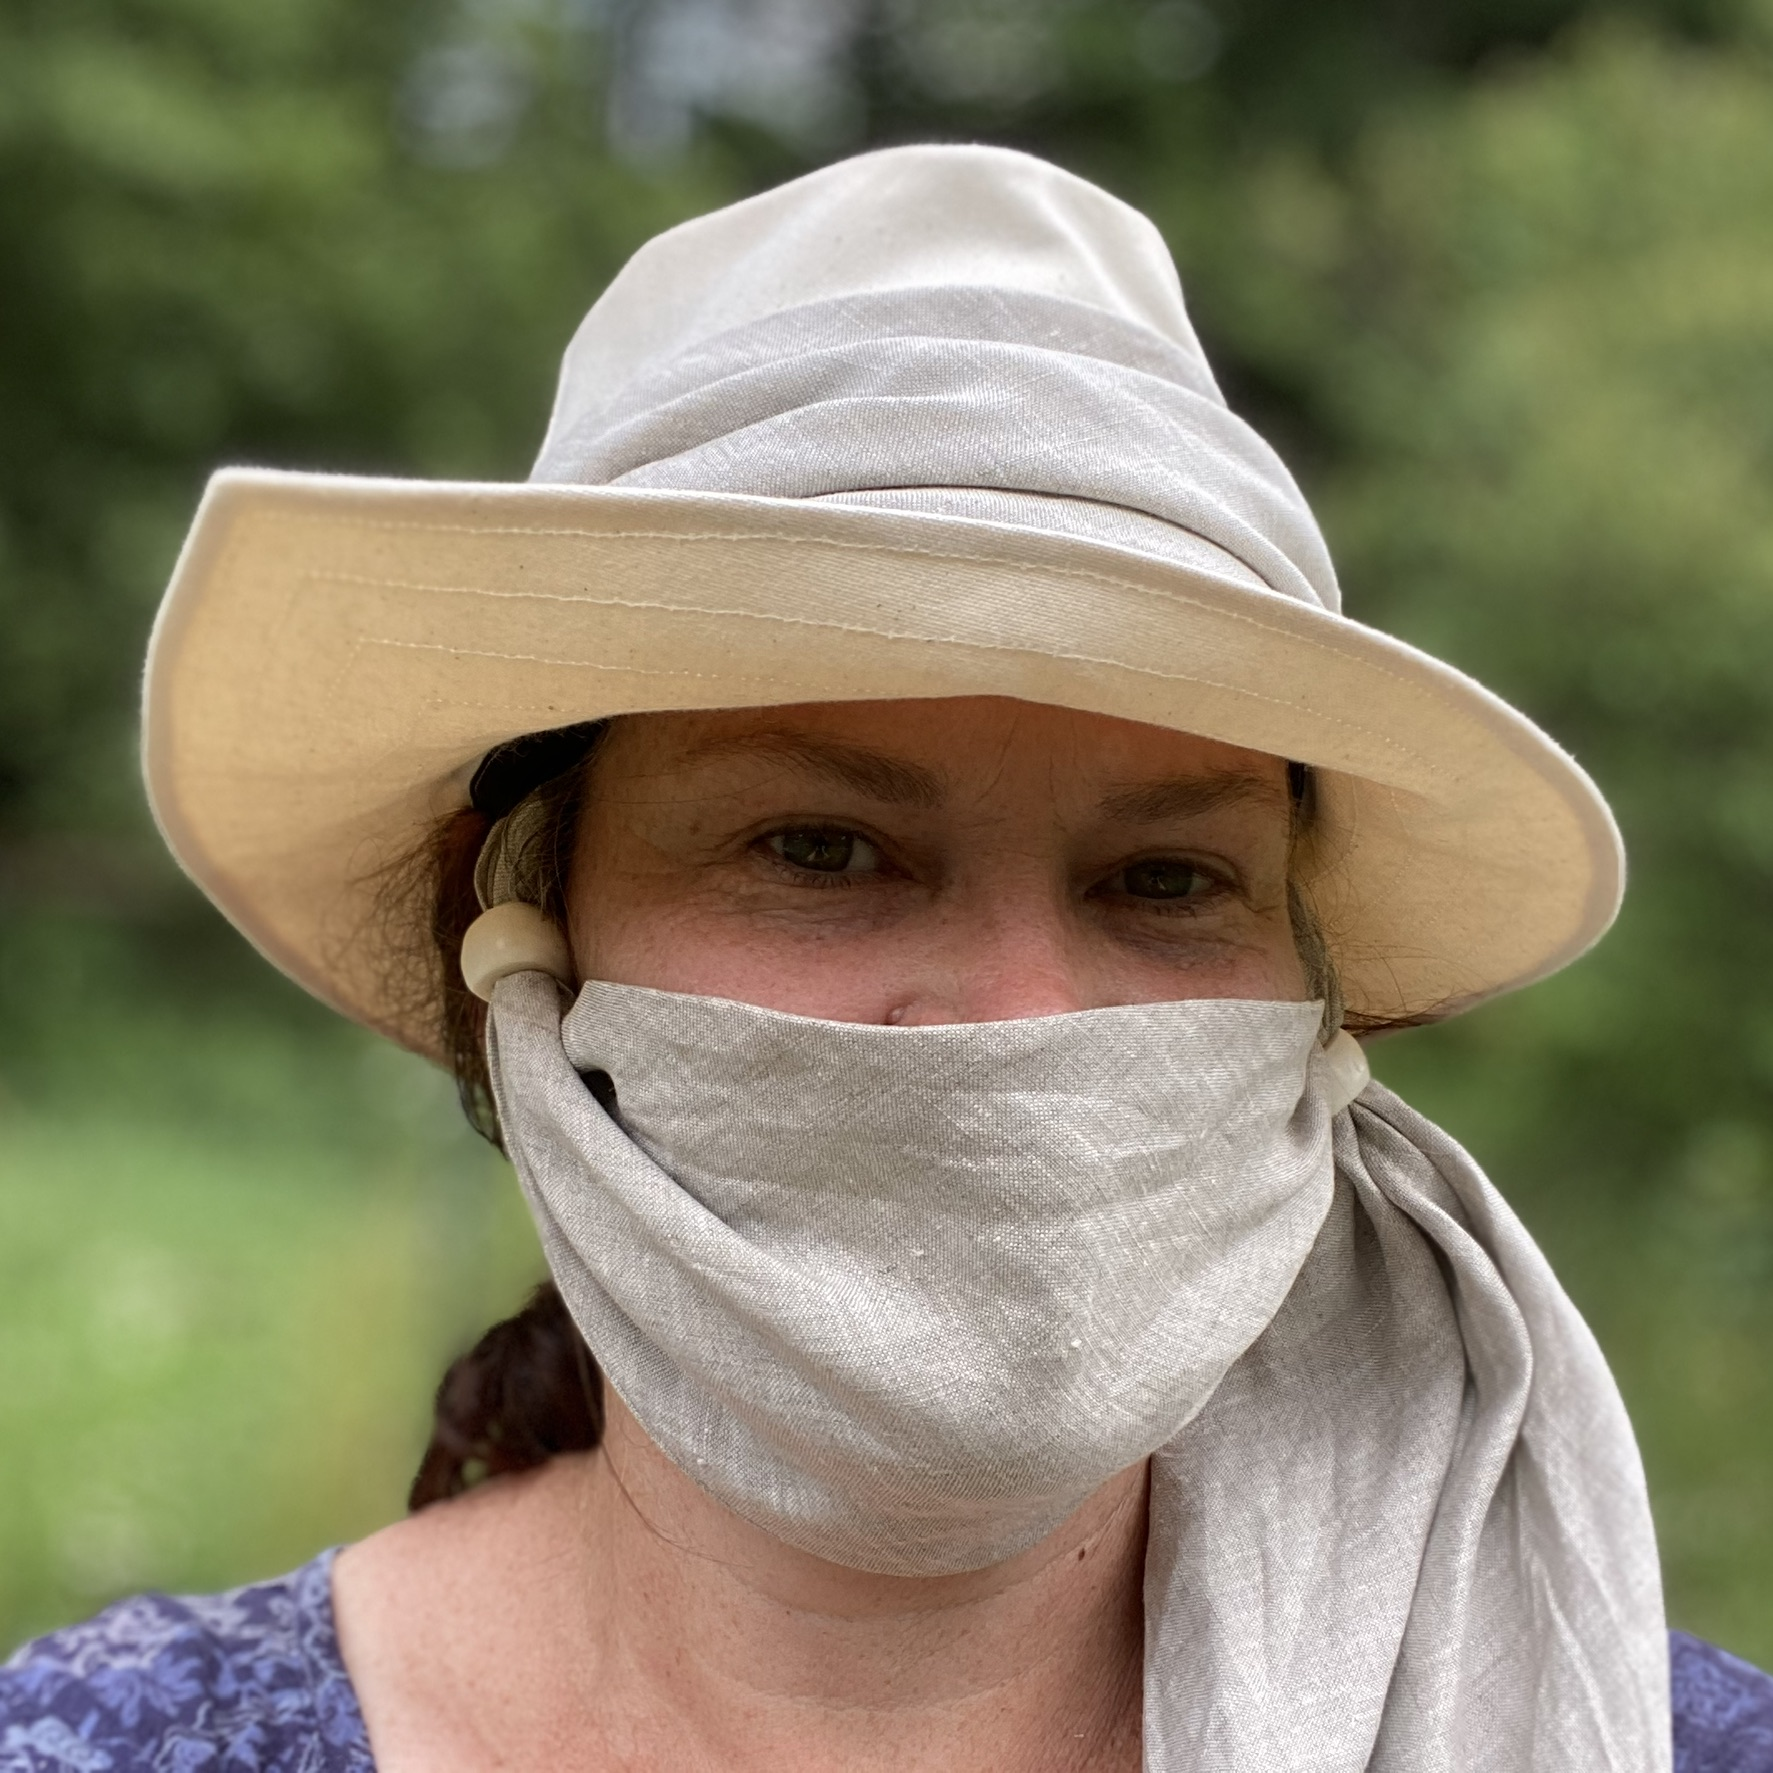 A lady wearing a fabric hat and a scarf on her face.